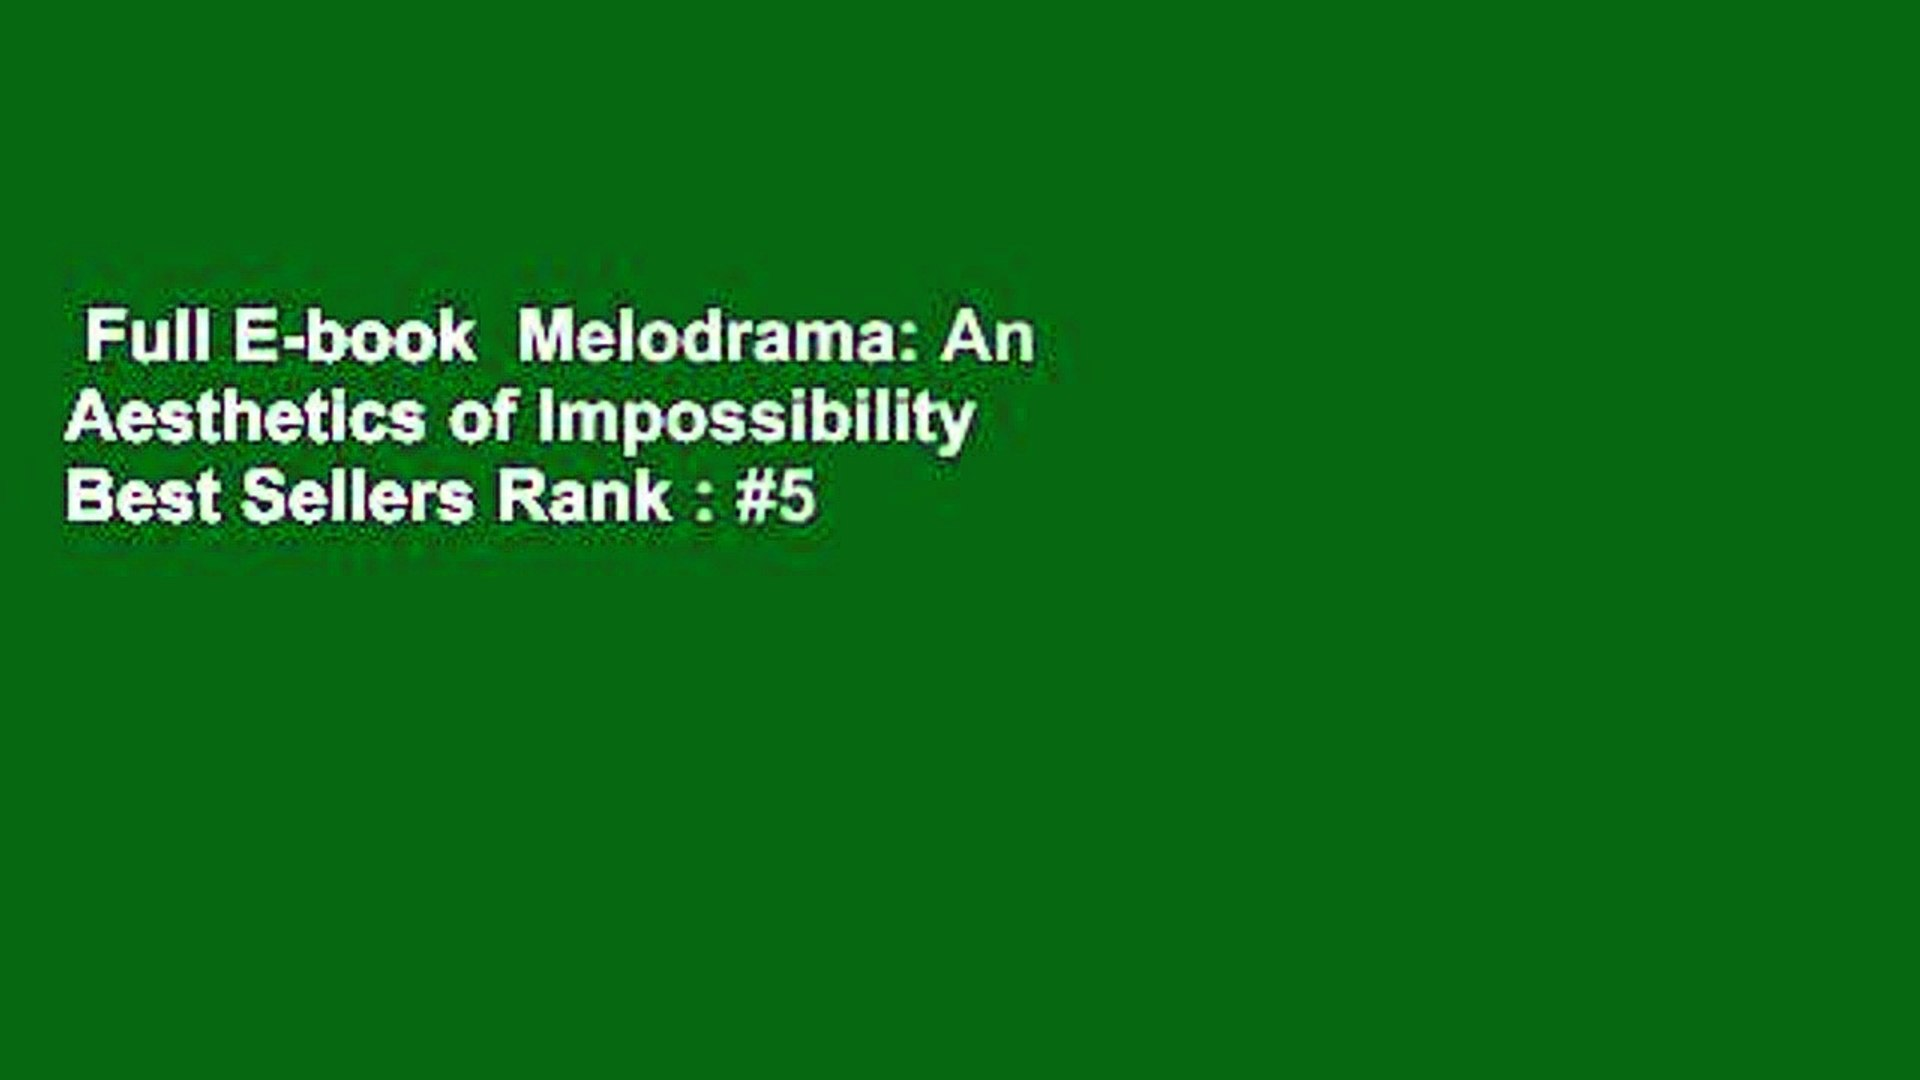 Full E-book  Melodrama: An Aesthetics of Impossibility  Best Sellers Rank : #5